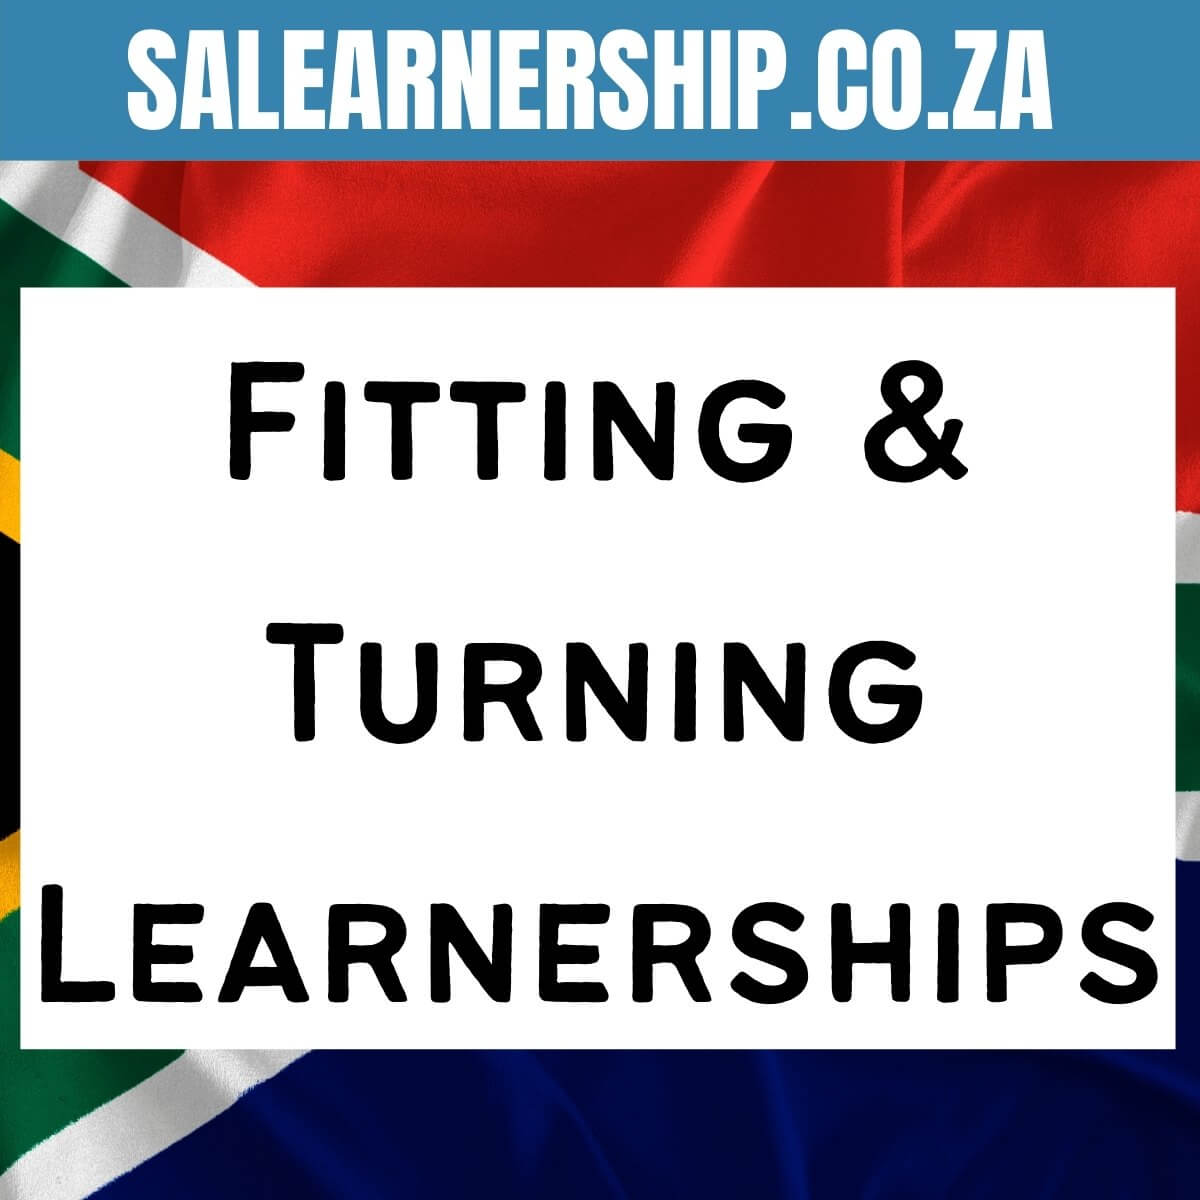 Fitting & Turning Learnerships